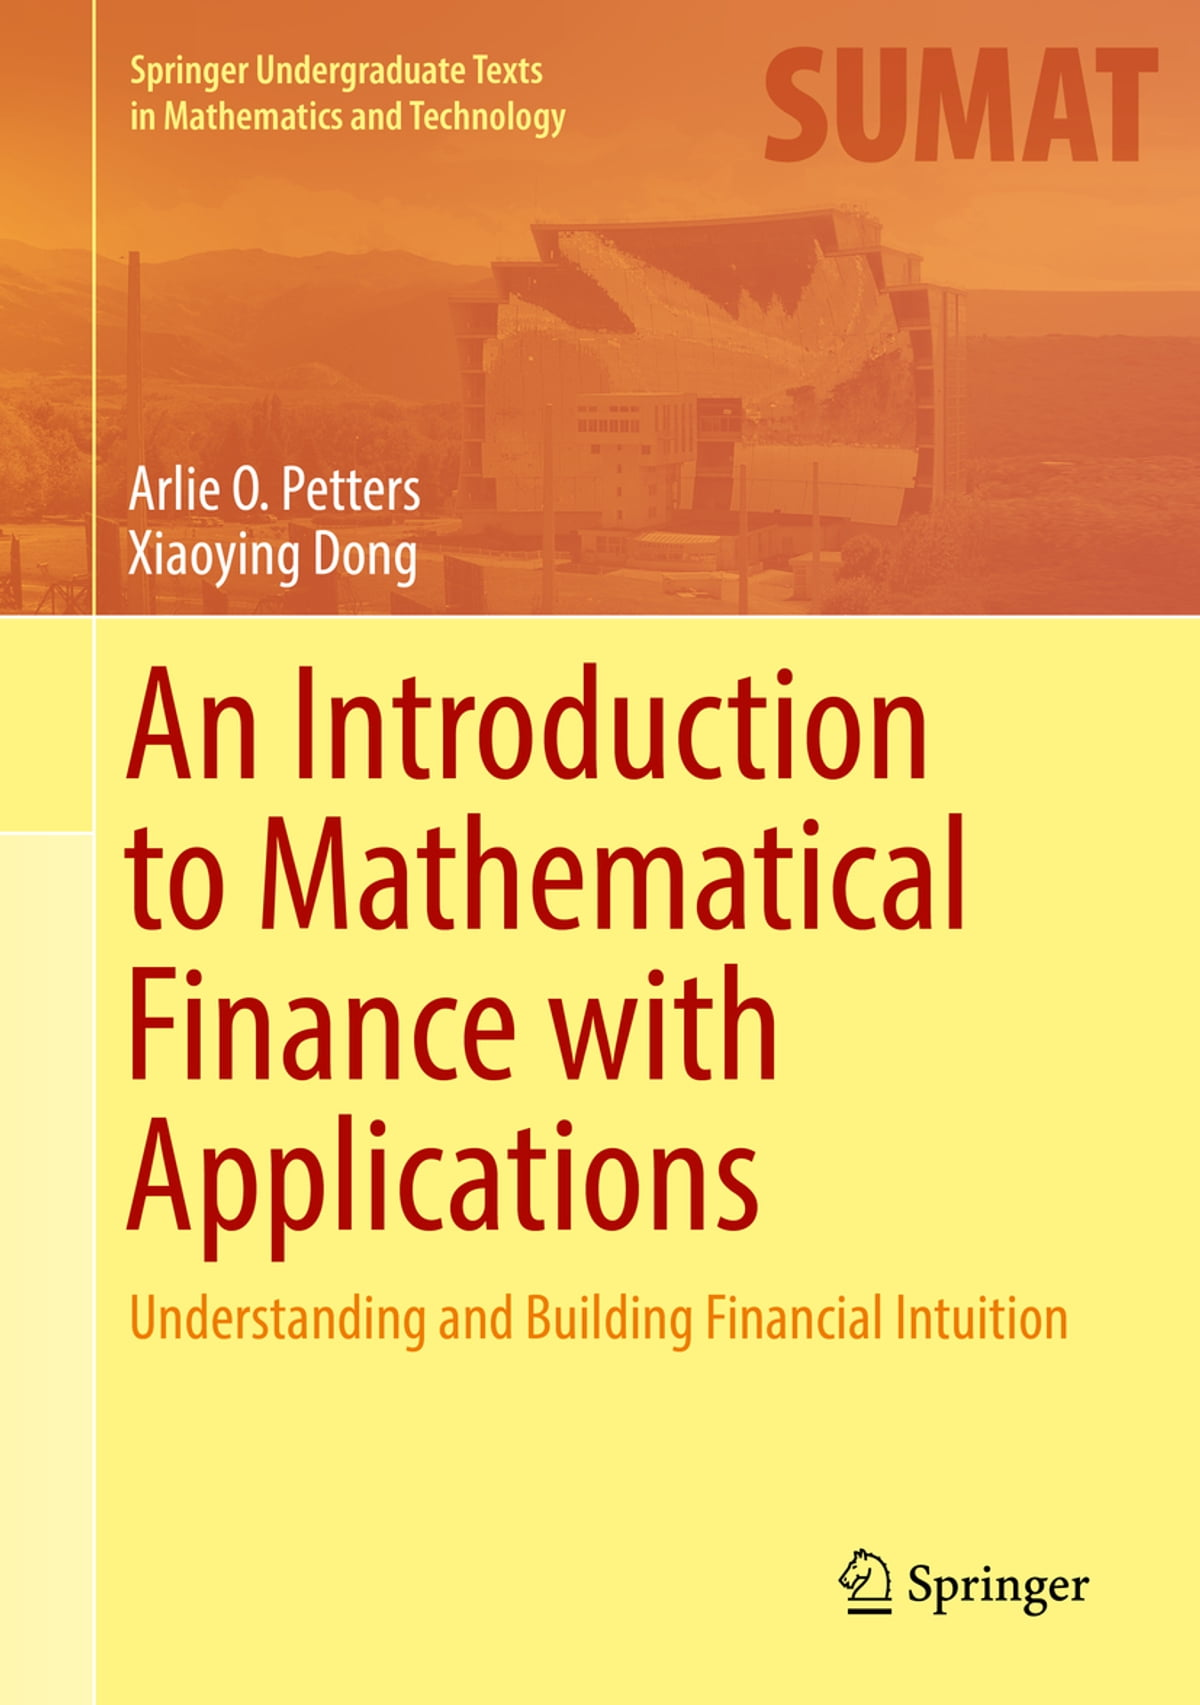 An Introduction To Mathematical Finance With Applications Ebook By Arlie O  Petters  9781493937837  Rakuten Kobo